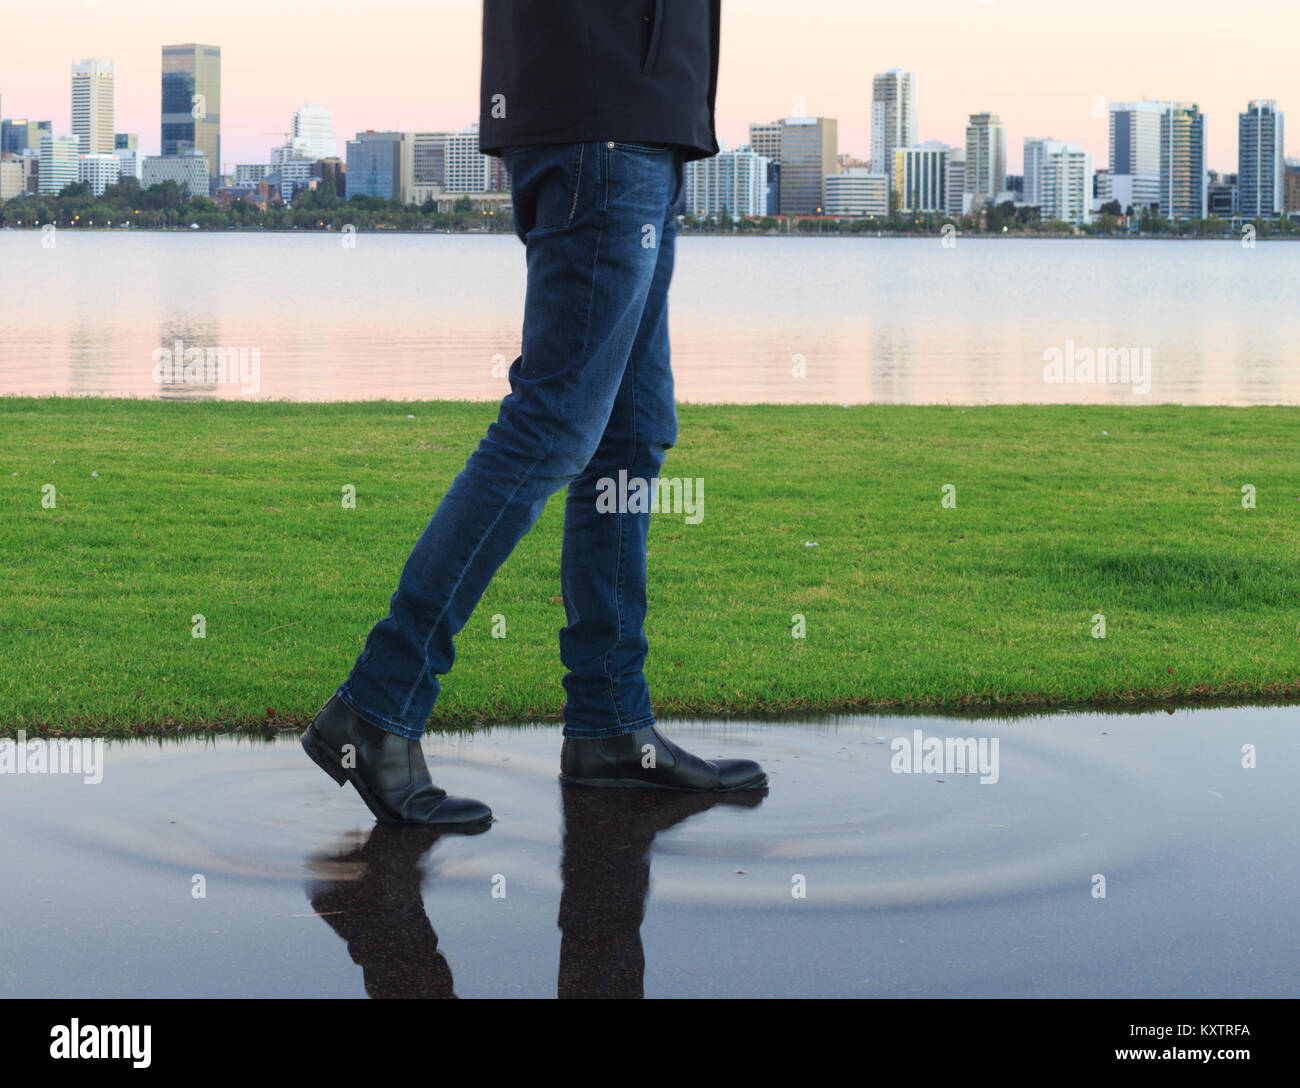 A man wearing boots walking through a puddle - Stock Image